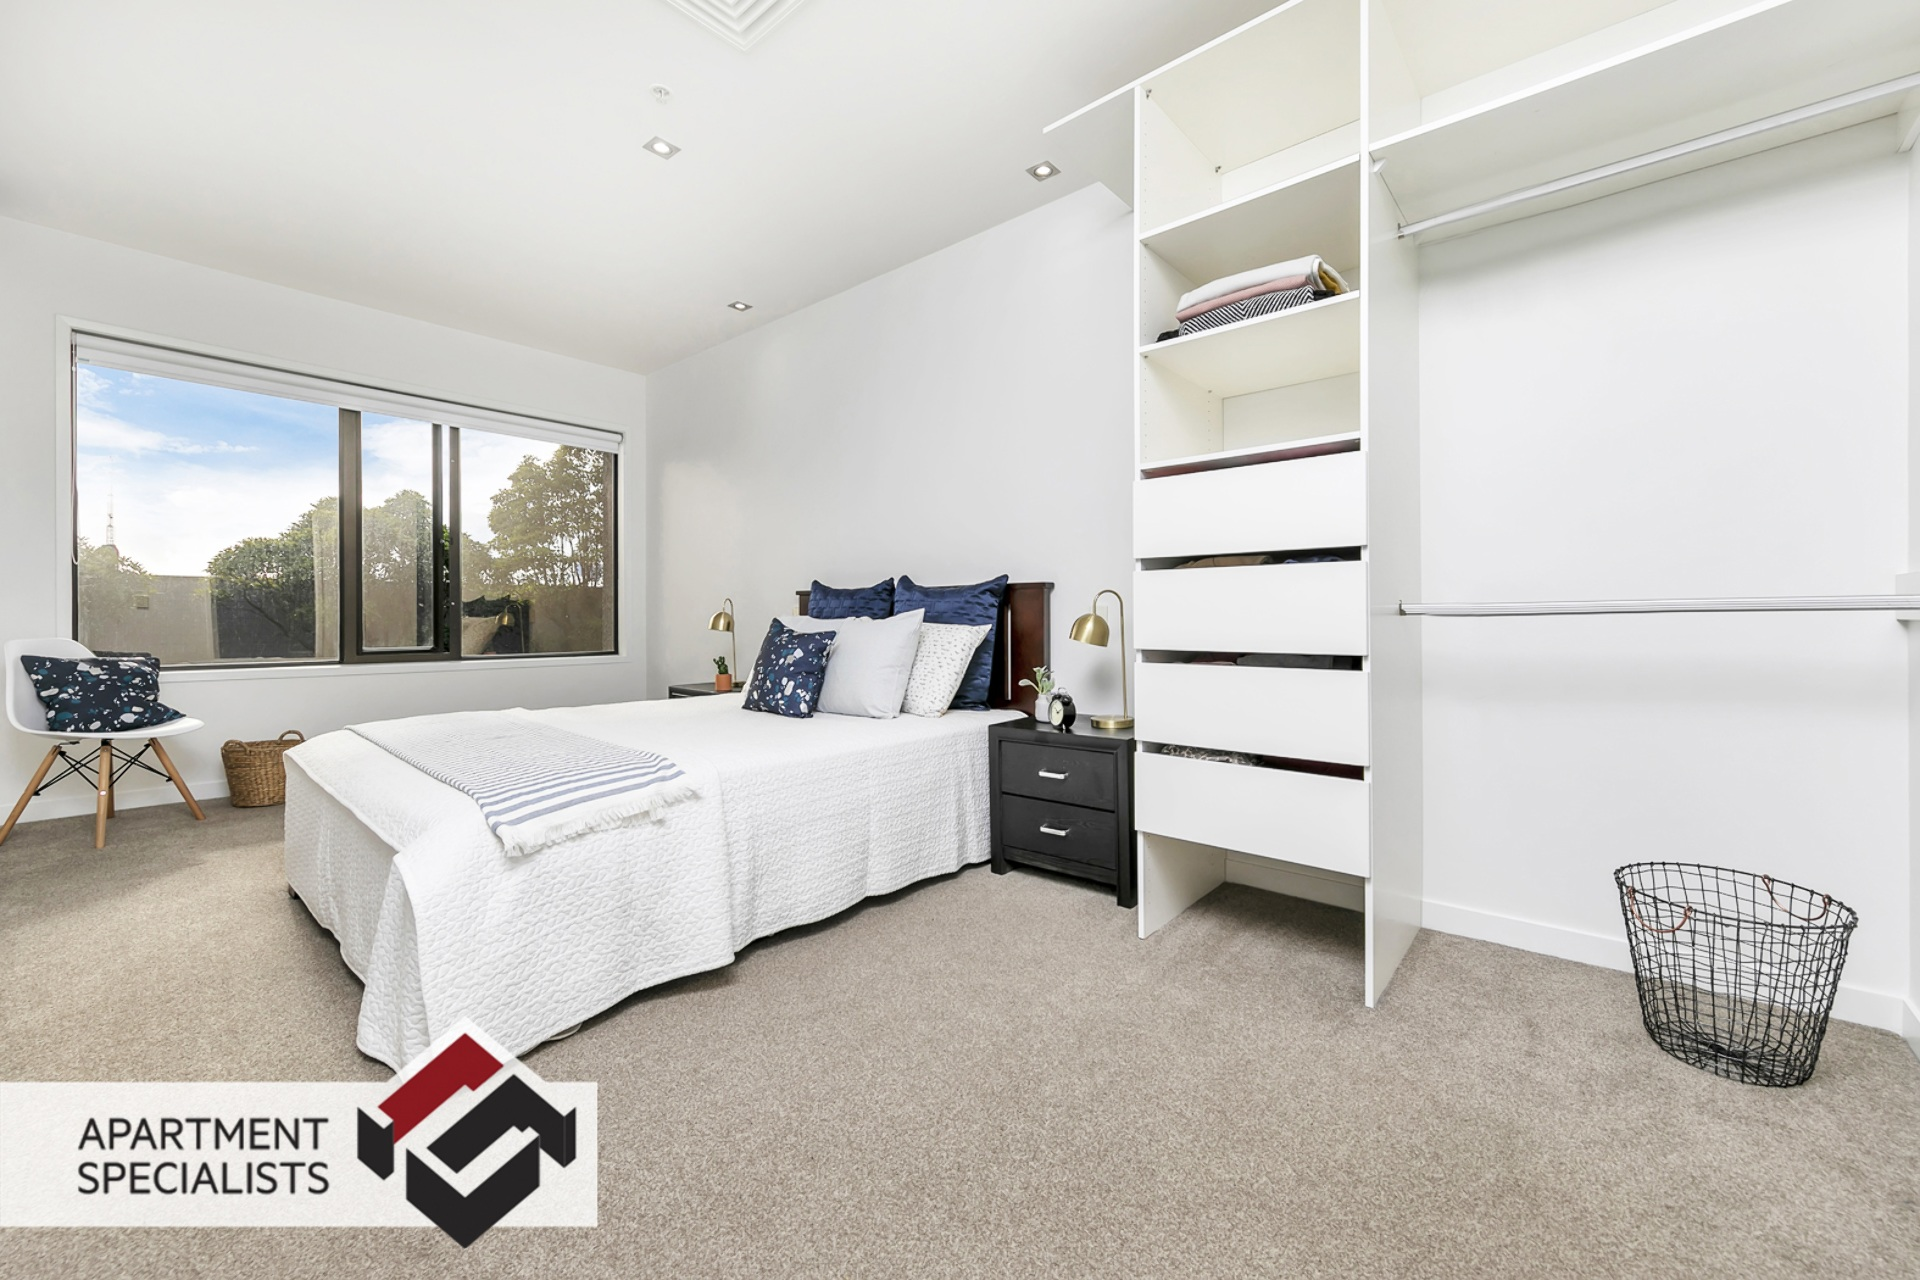 Hero | 145 Symonds Street, City Centre | Apartment Specialists